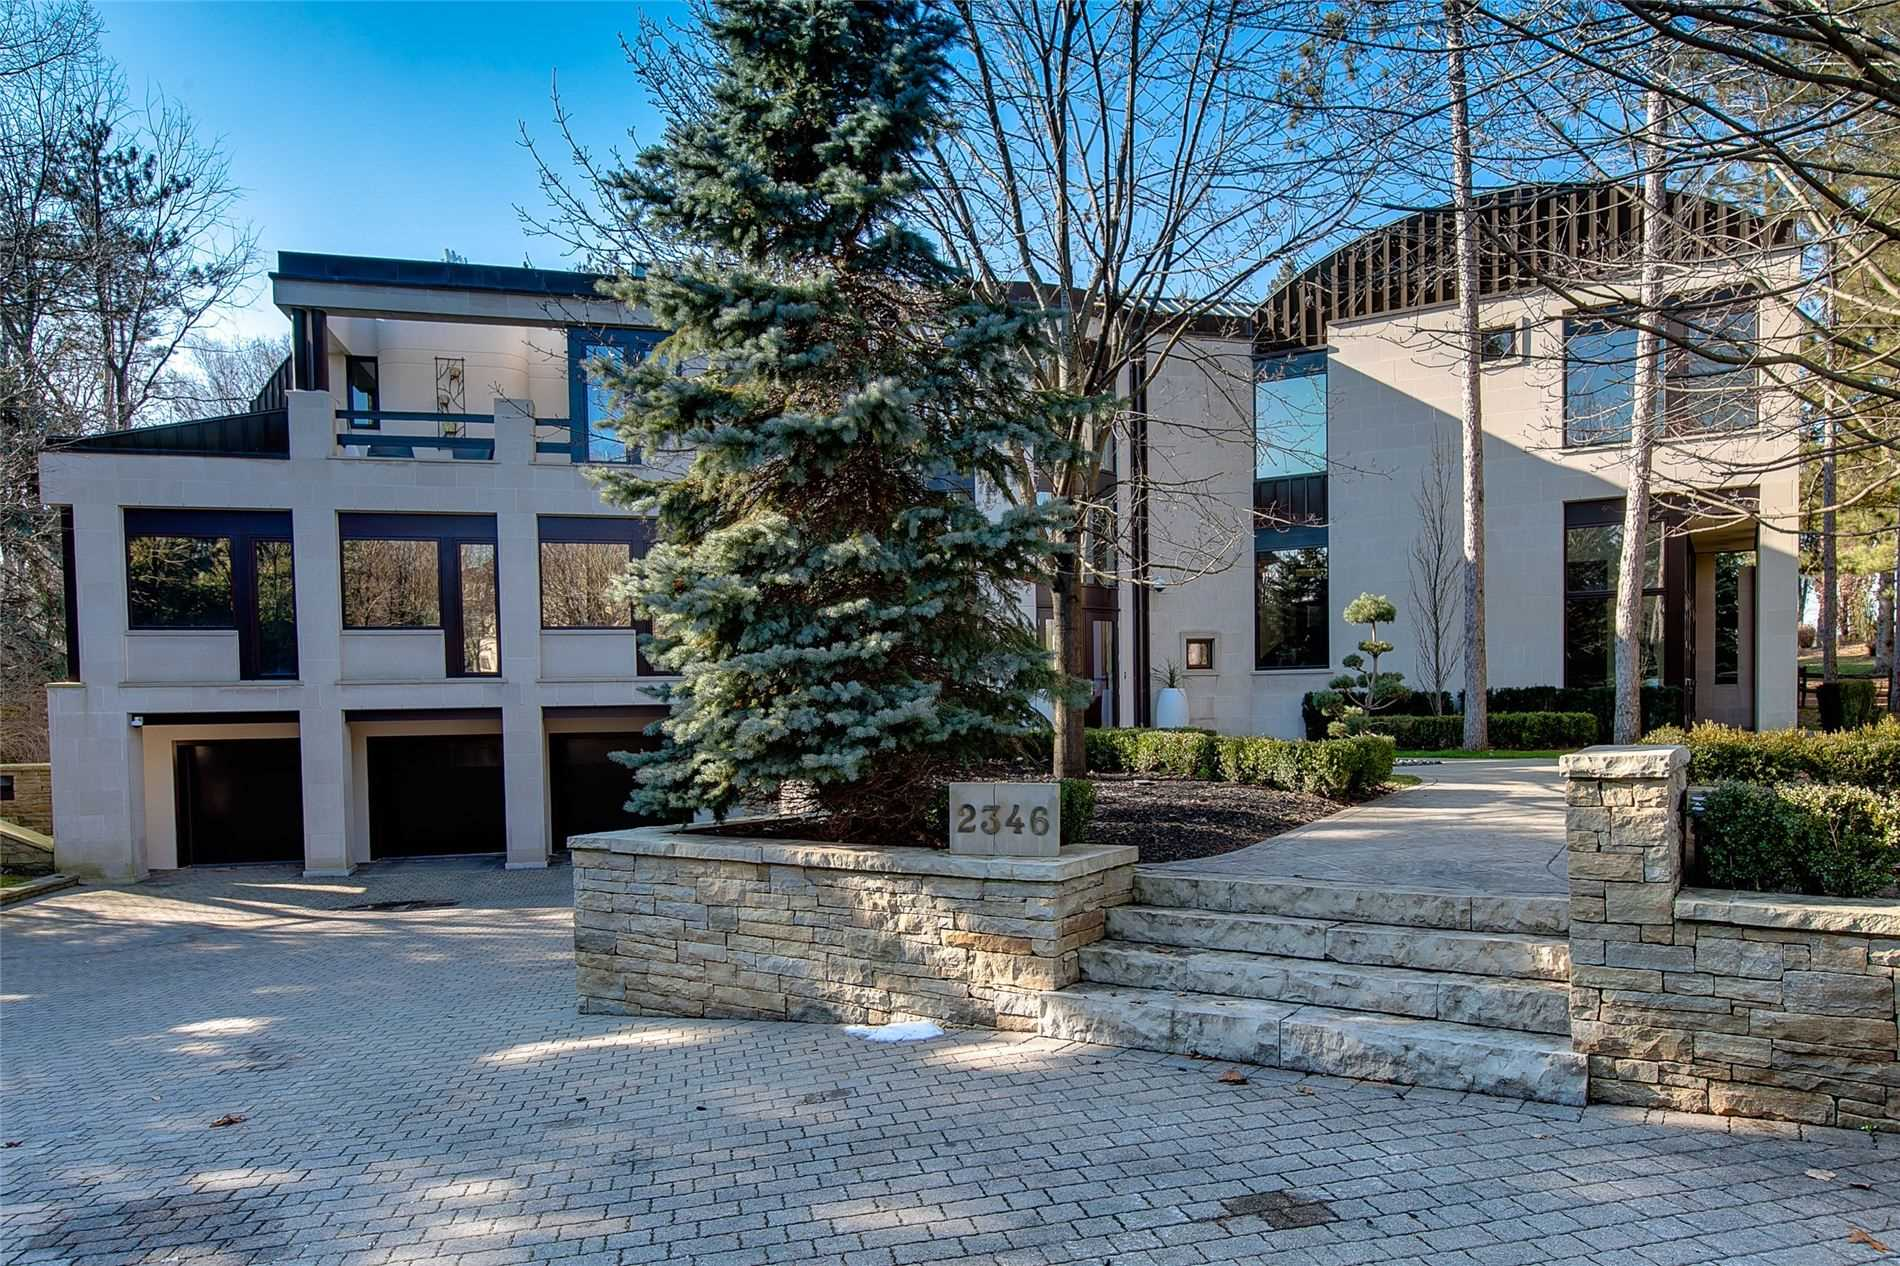 2346 Doulton Dr, Mississauga, Ontario L5H3M3, 4 Bedrooms Bedrooms, 10 Rooms Rooms,6 BathroomsBathrooms,Detached,For Sale,Doulton,W4859612